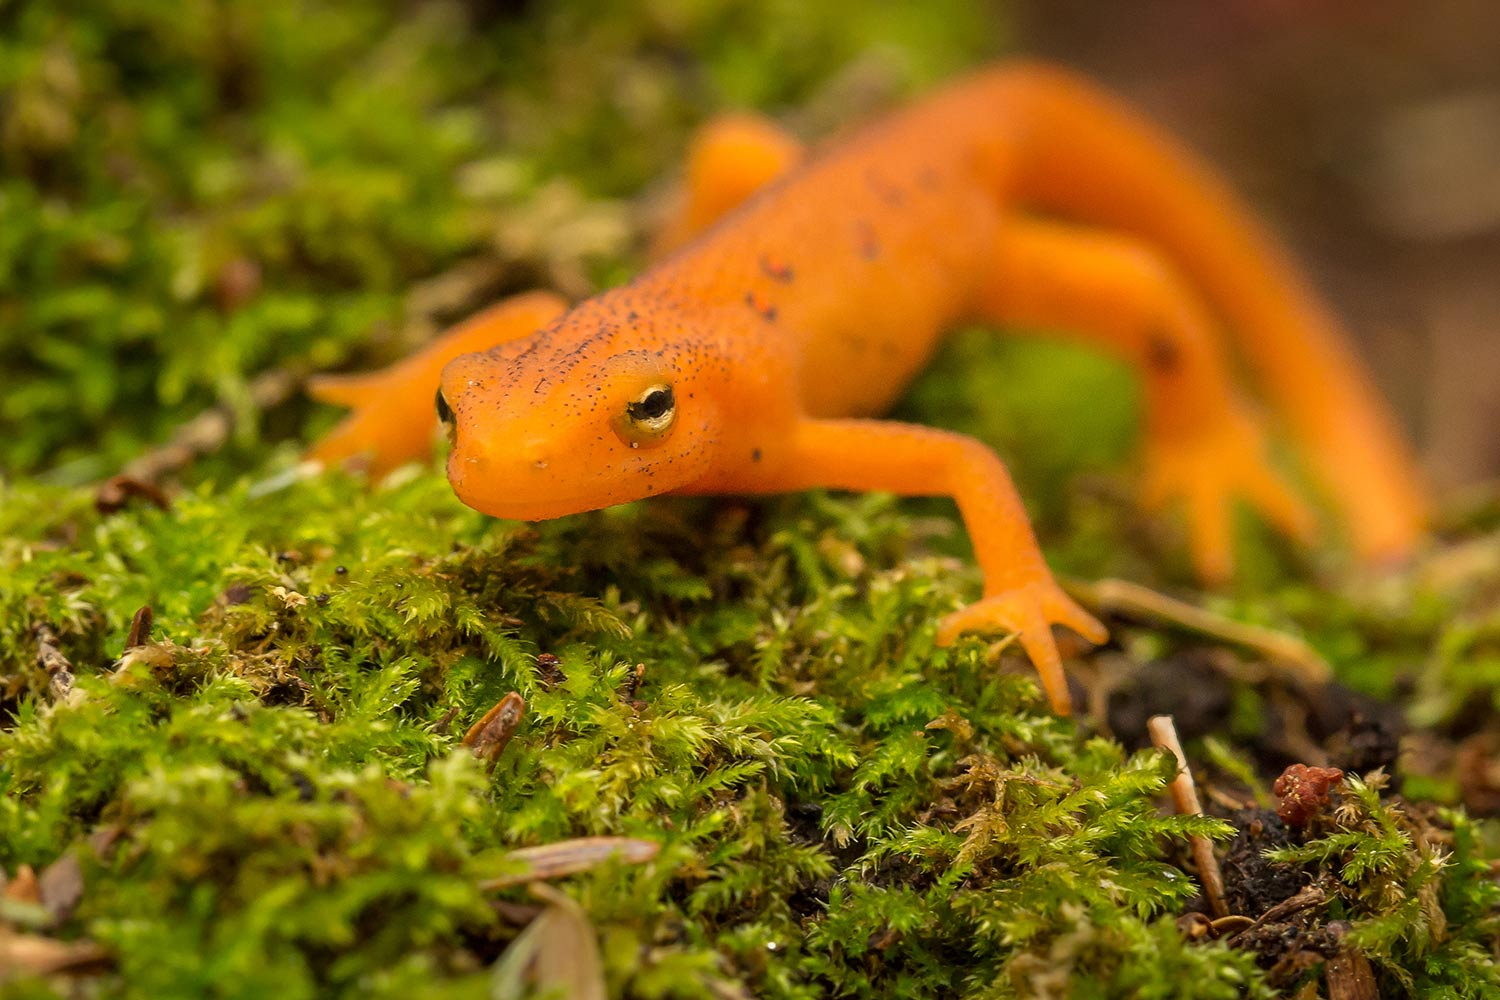 I found this little guy hanging out along the hiking trail in the woods of New Hampshire, an Eastern newt, or Red Eft.